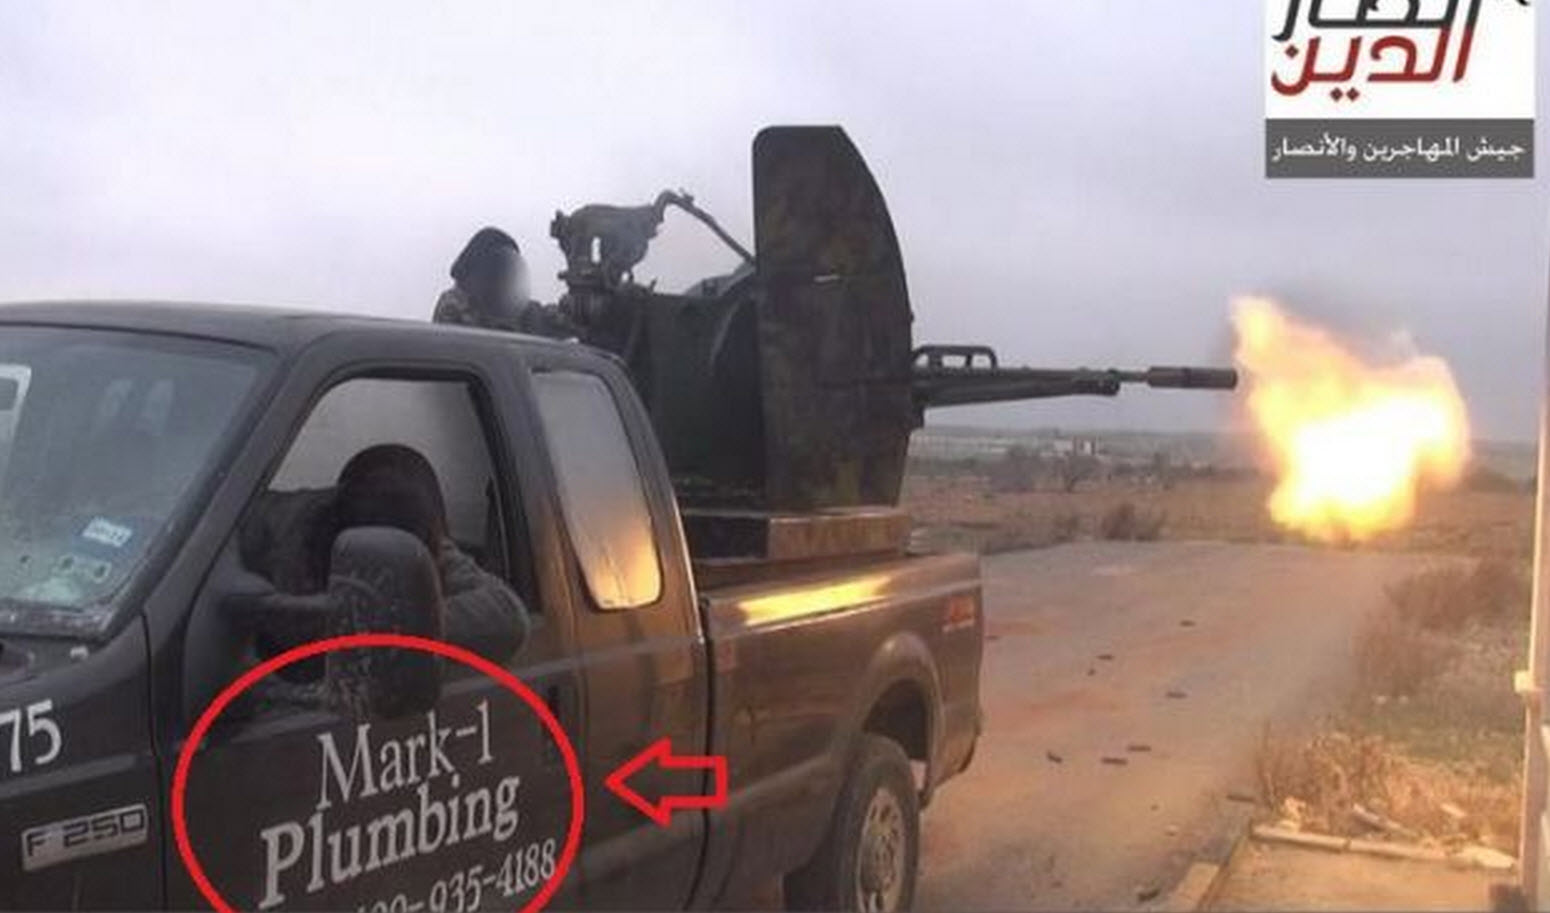 From Average Joe To Average Jihadi - How A Texas Plumbers Truck Turned Up In Syria